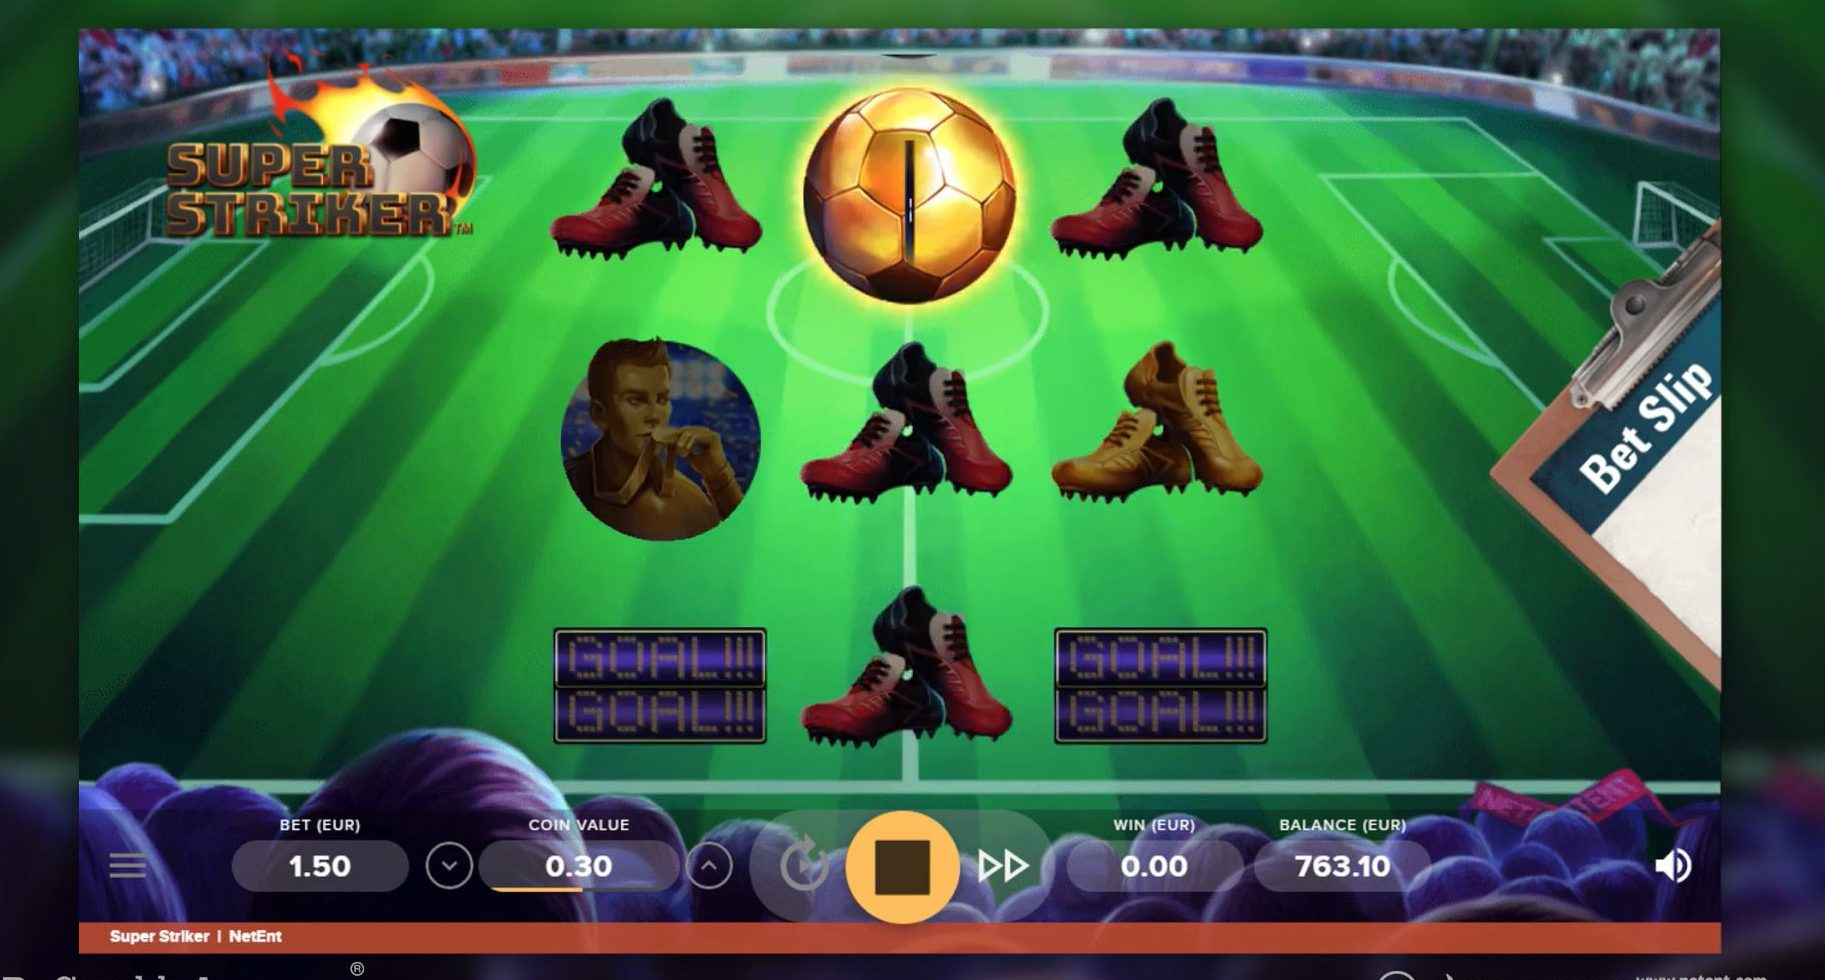 Super Striker slot screenshot with a soccer field in the background and a golden soccer ball.